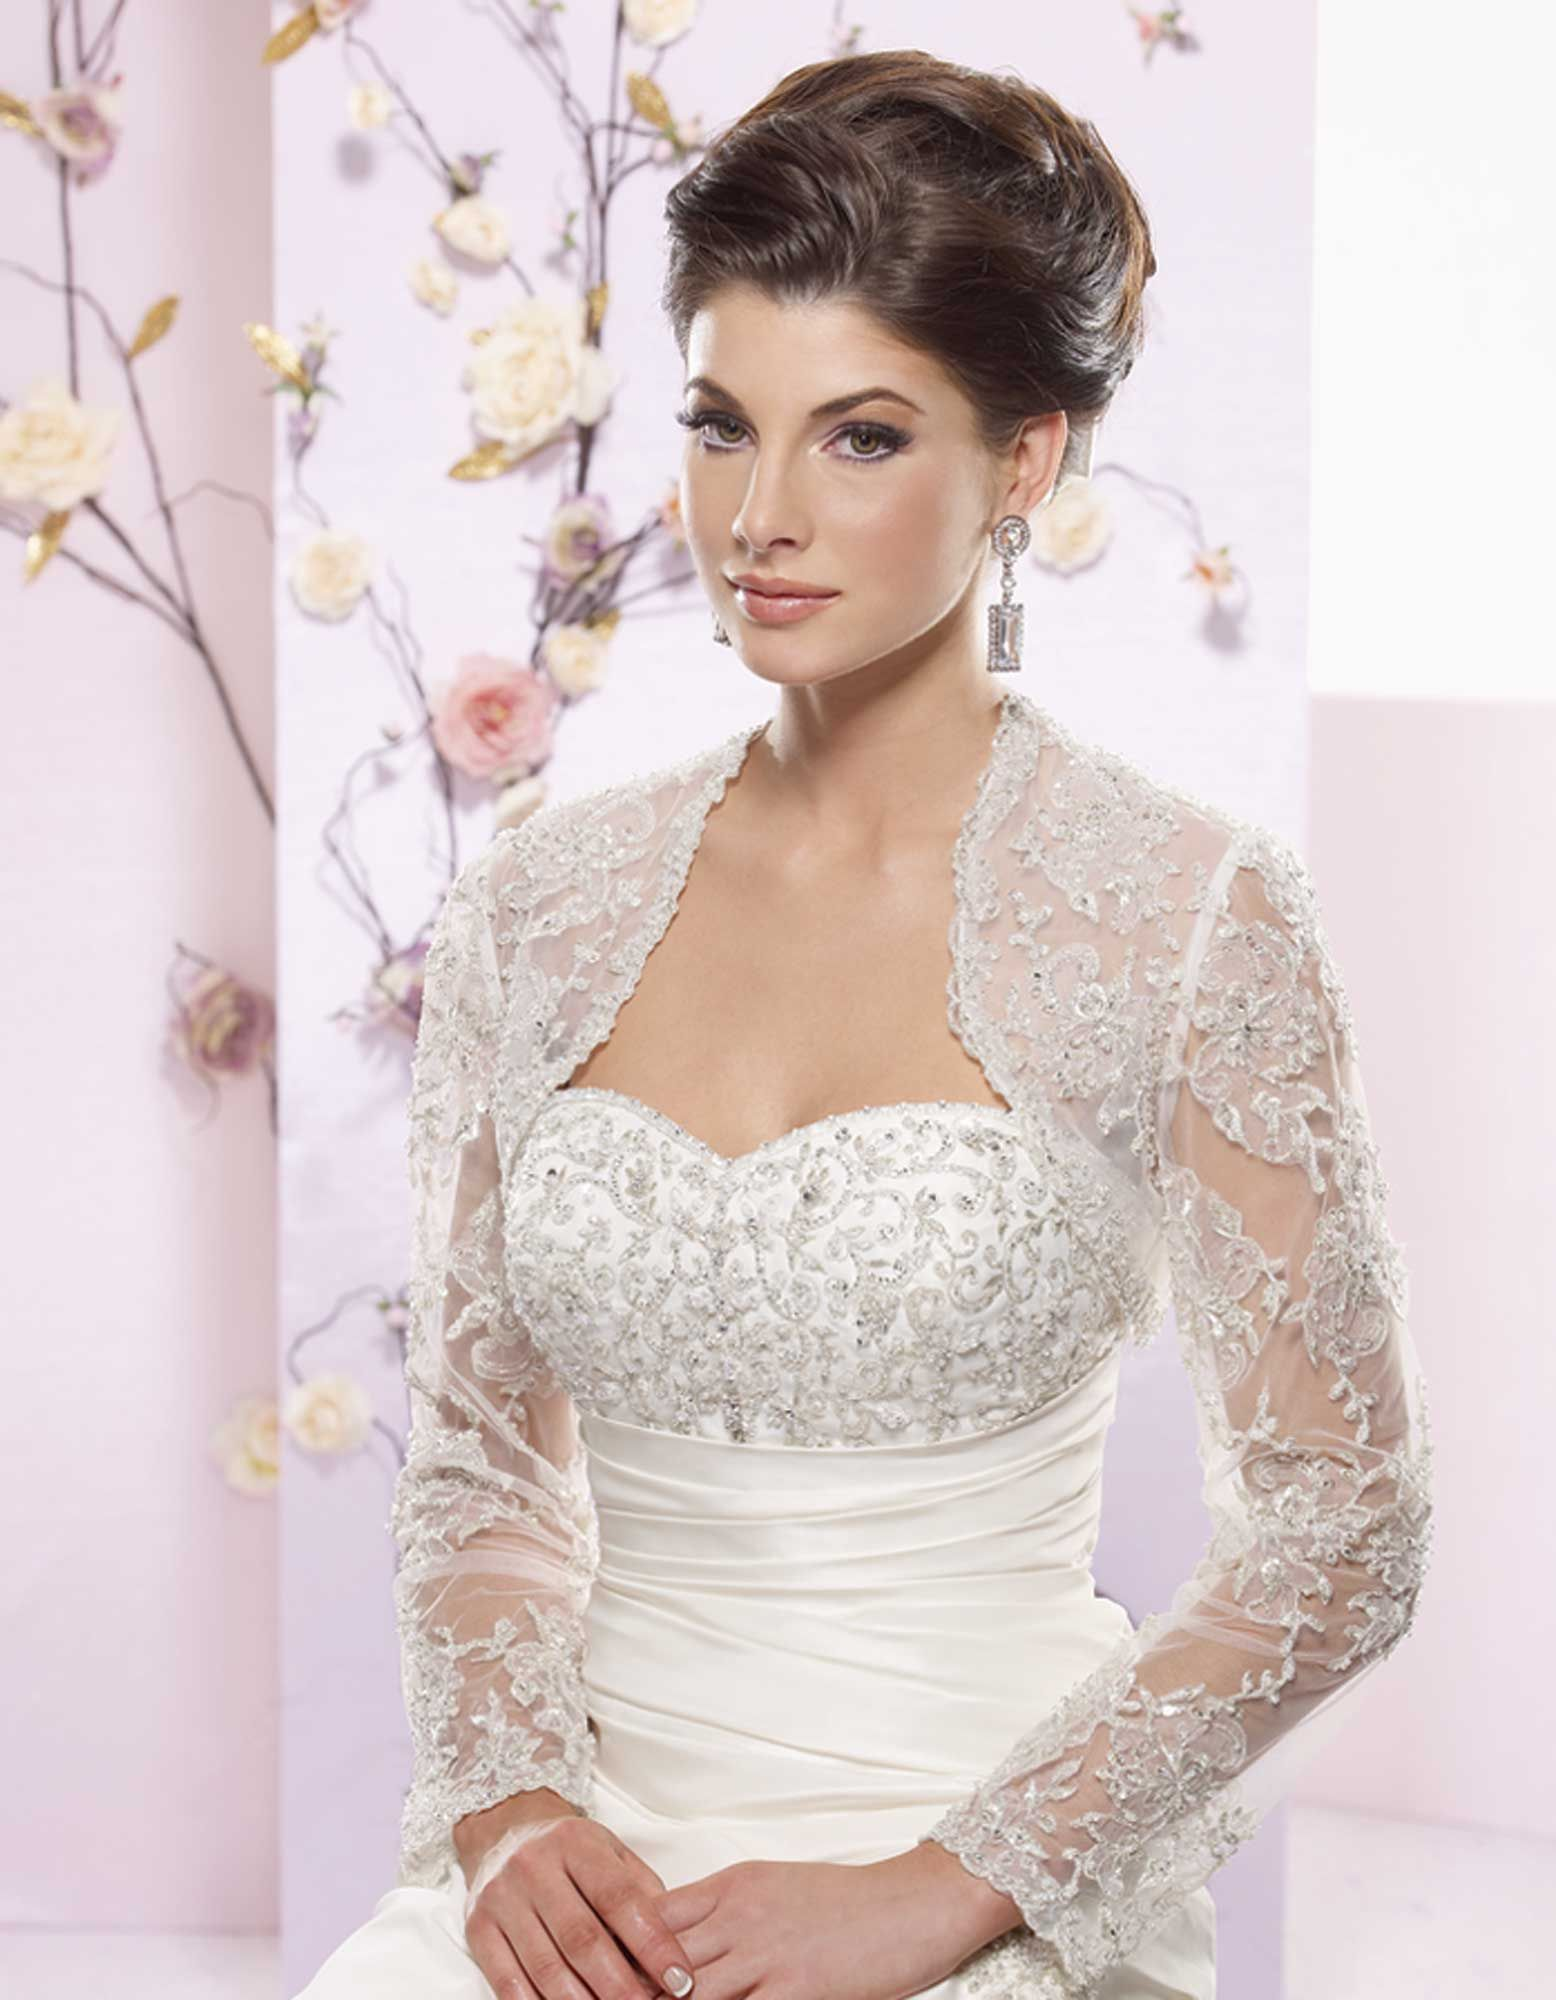 Niceer than nice wedding pinterest wedding dress